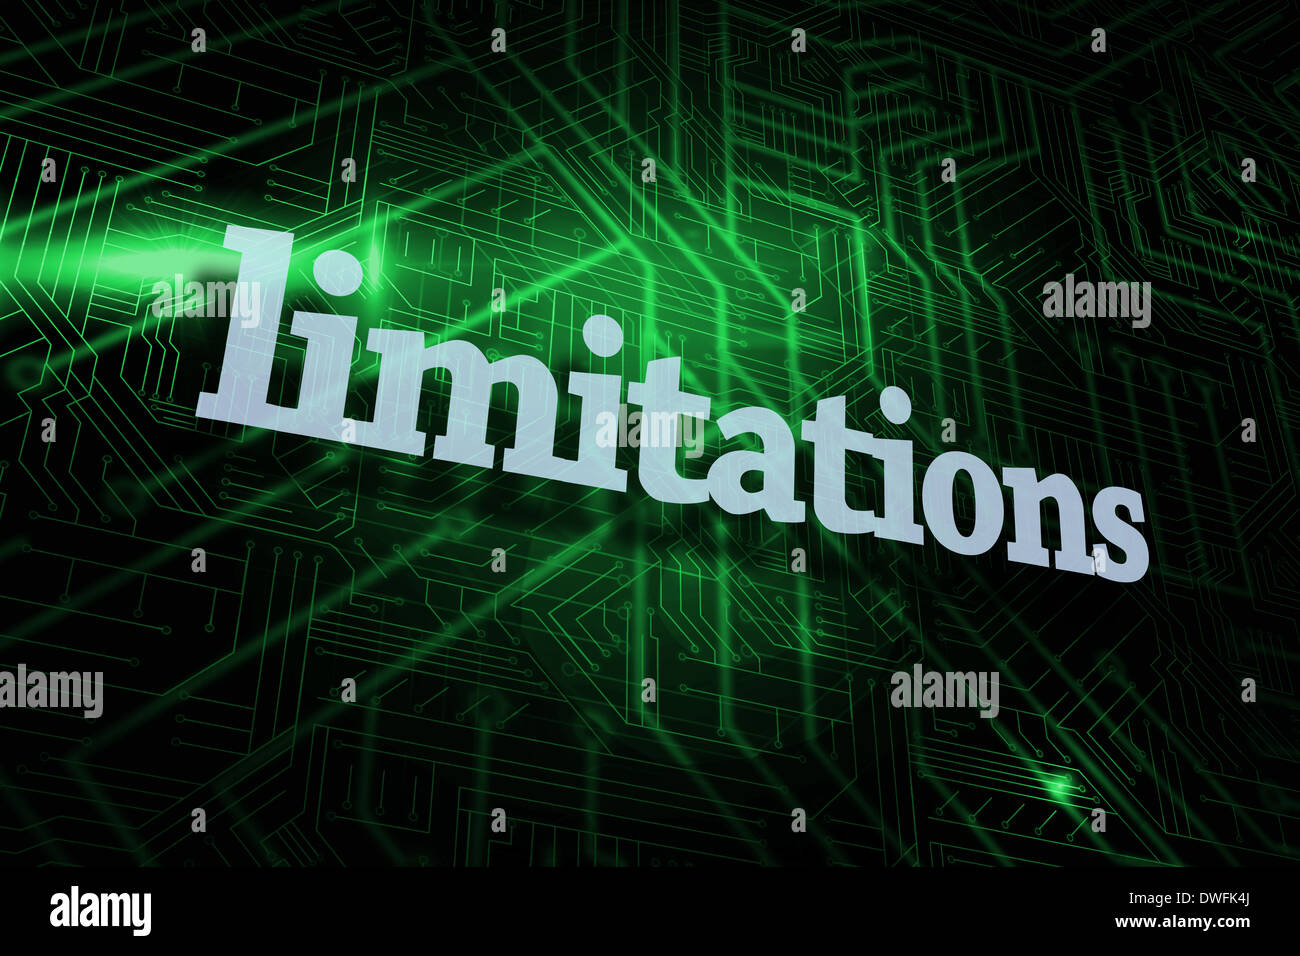 Limitations against green and black circuit board - Stock Image